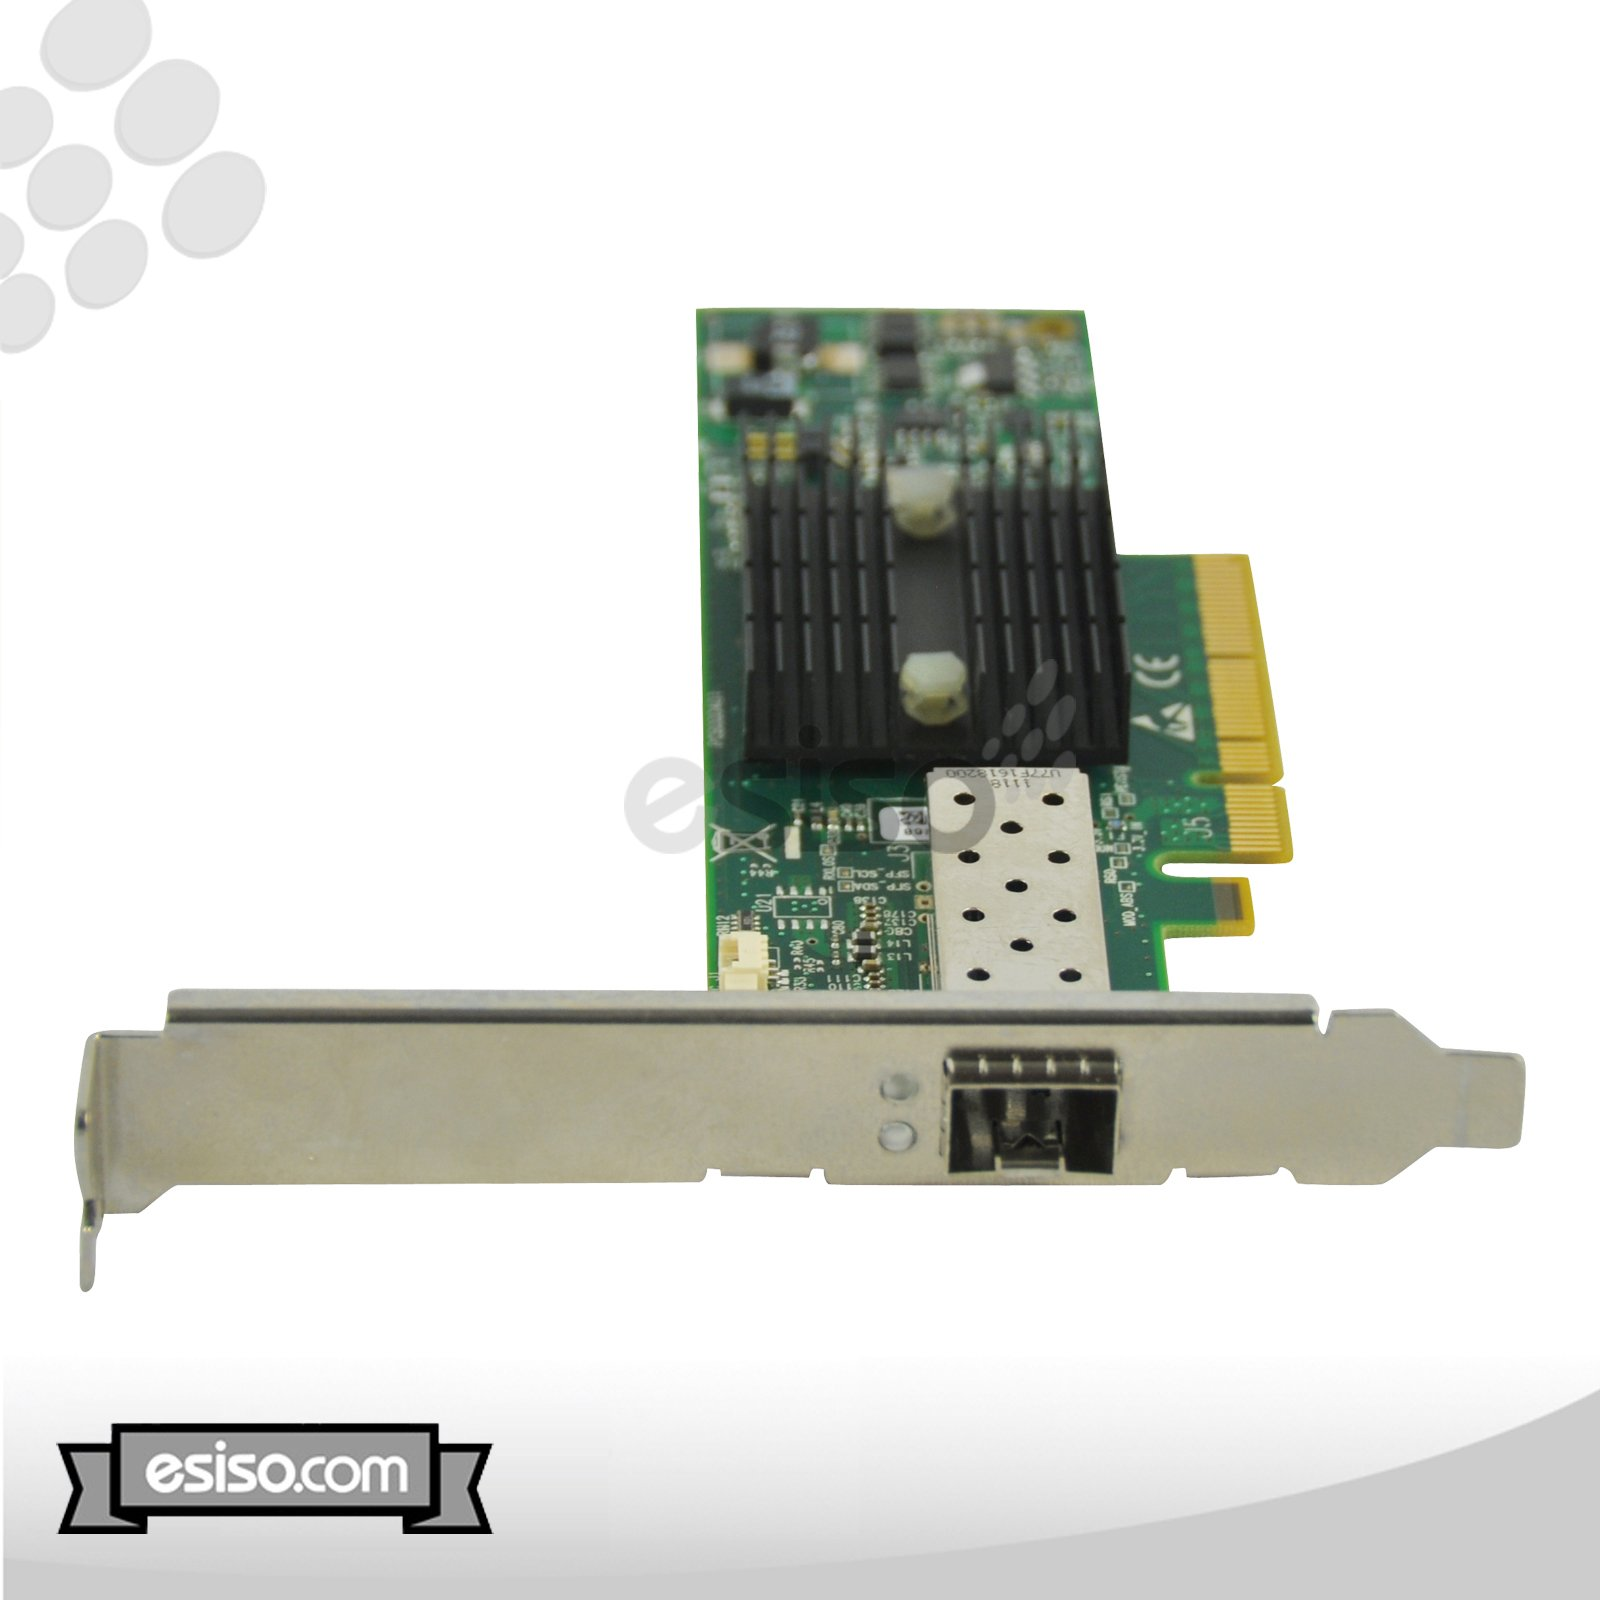 Lot Of 2 Mellanox Connectx-2 PCI-Epress x 8 10GBe Ethernet Network Server Adapter Interface Card MNPA19-XTR In Bulk Package